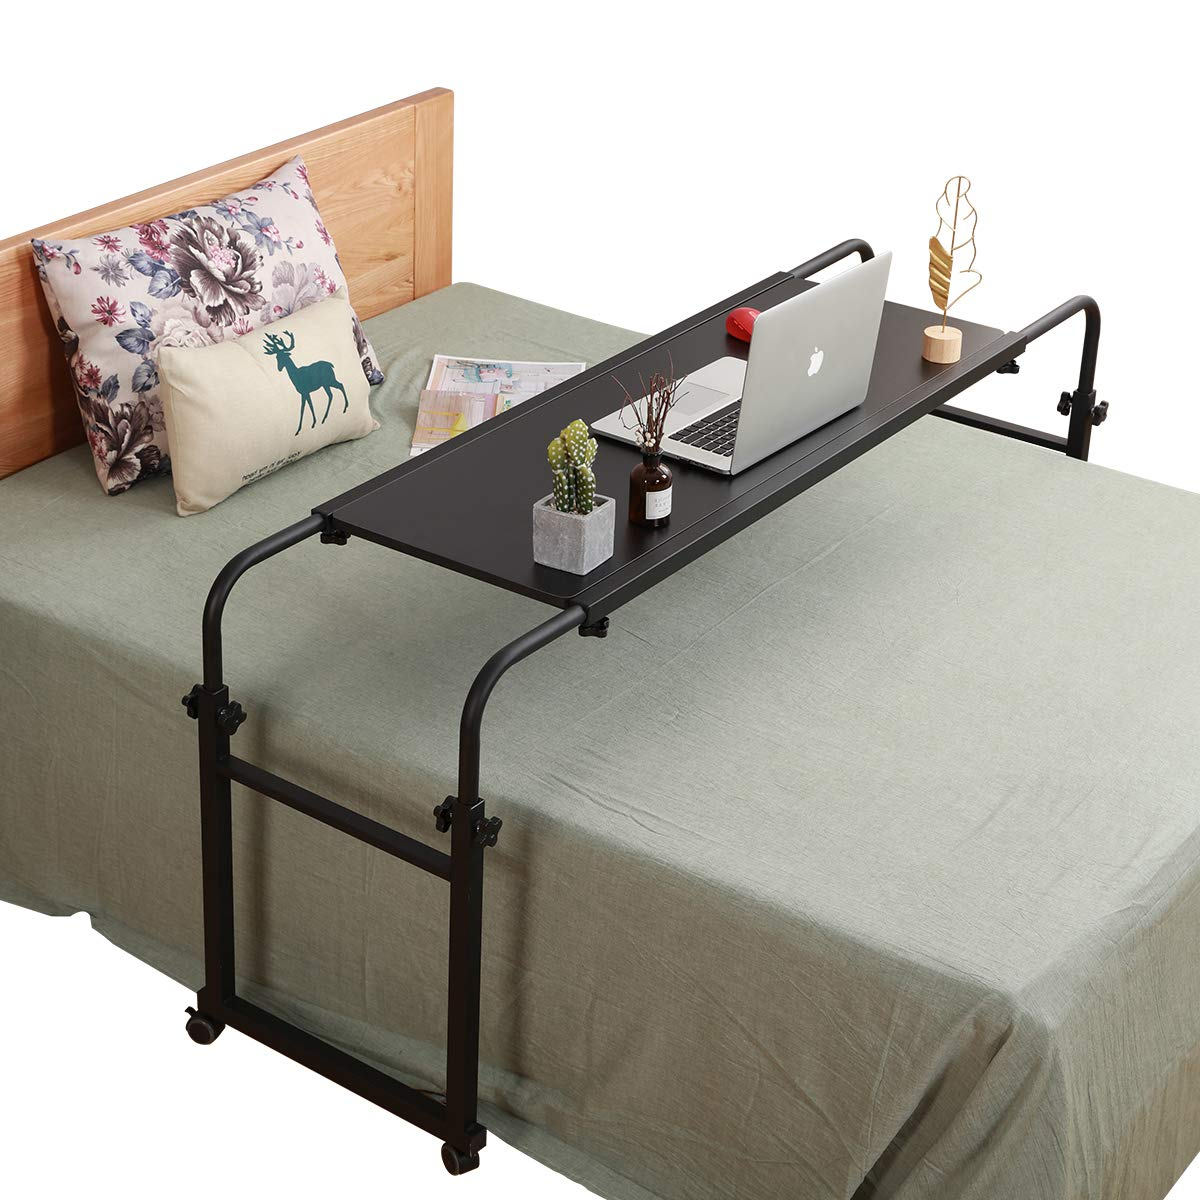 Overbed Table with Wheels Overbed Desk Over Bed Desk King Queen Bed Table Overbed Laptop Table Over Bed Table with Wheels(Black) by TigerDad